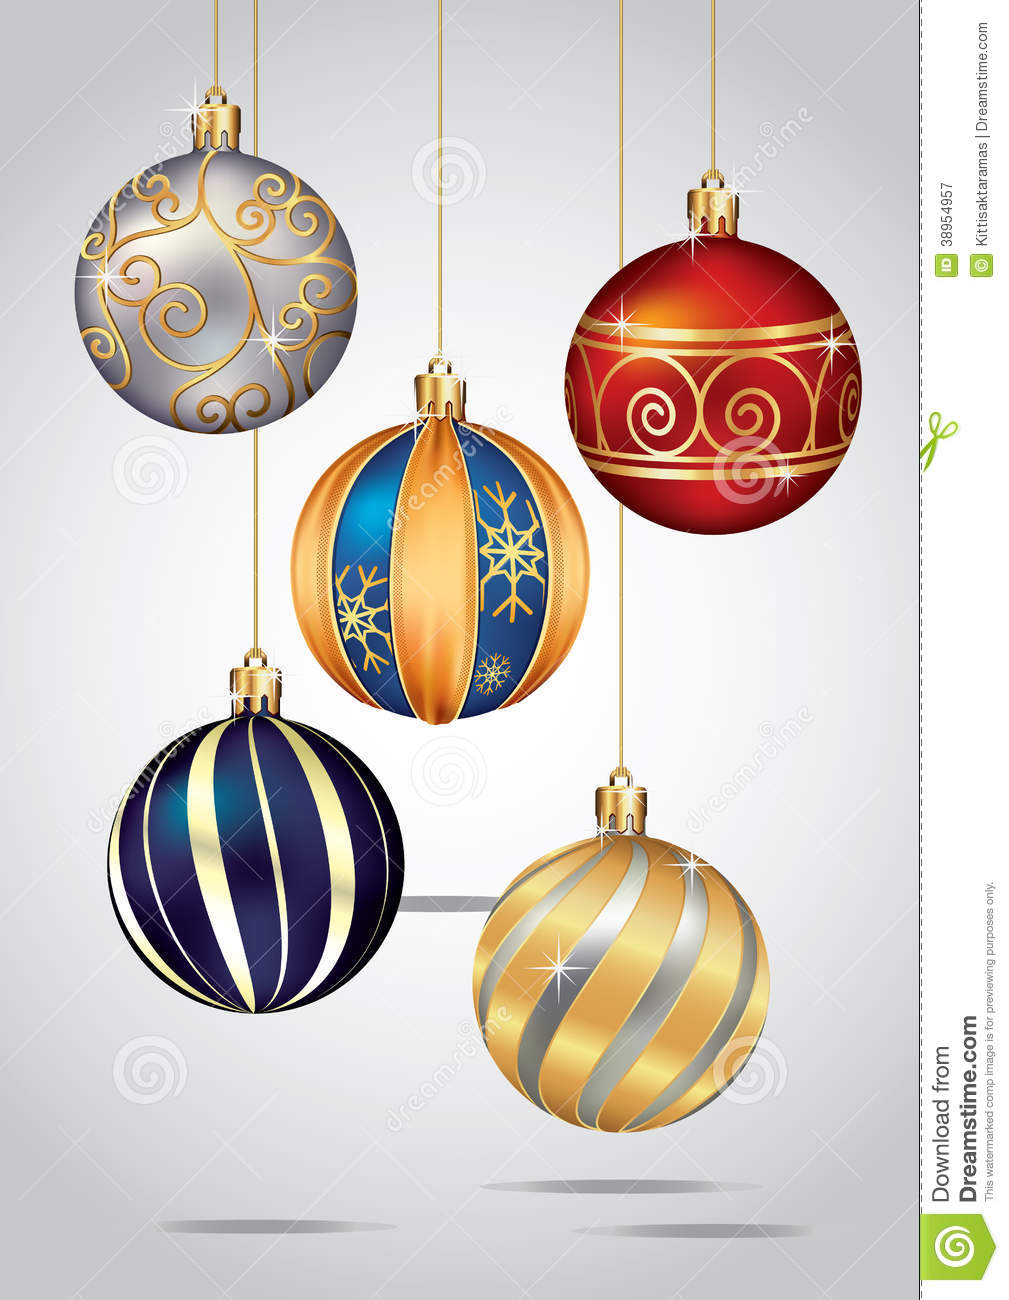 Christmas ornaments hanging on gold thread stock vector image 38954957 - Hanging christmas ornaments ...